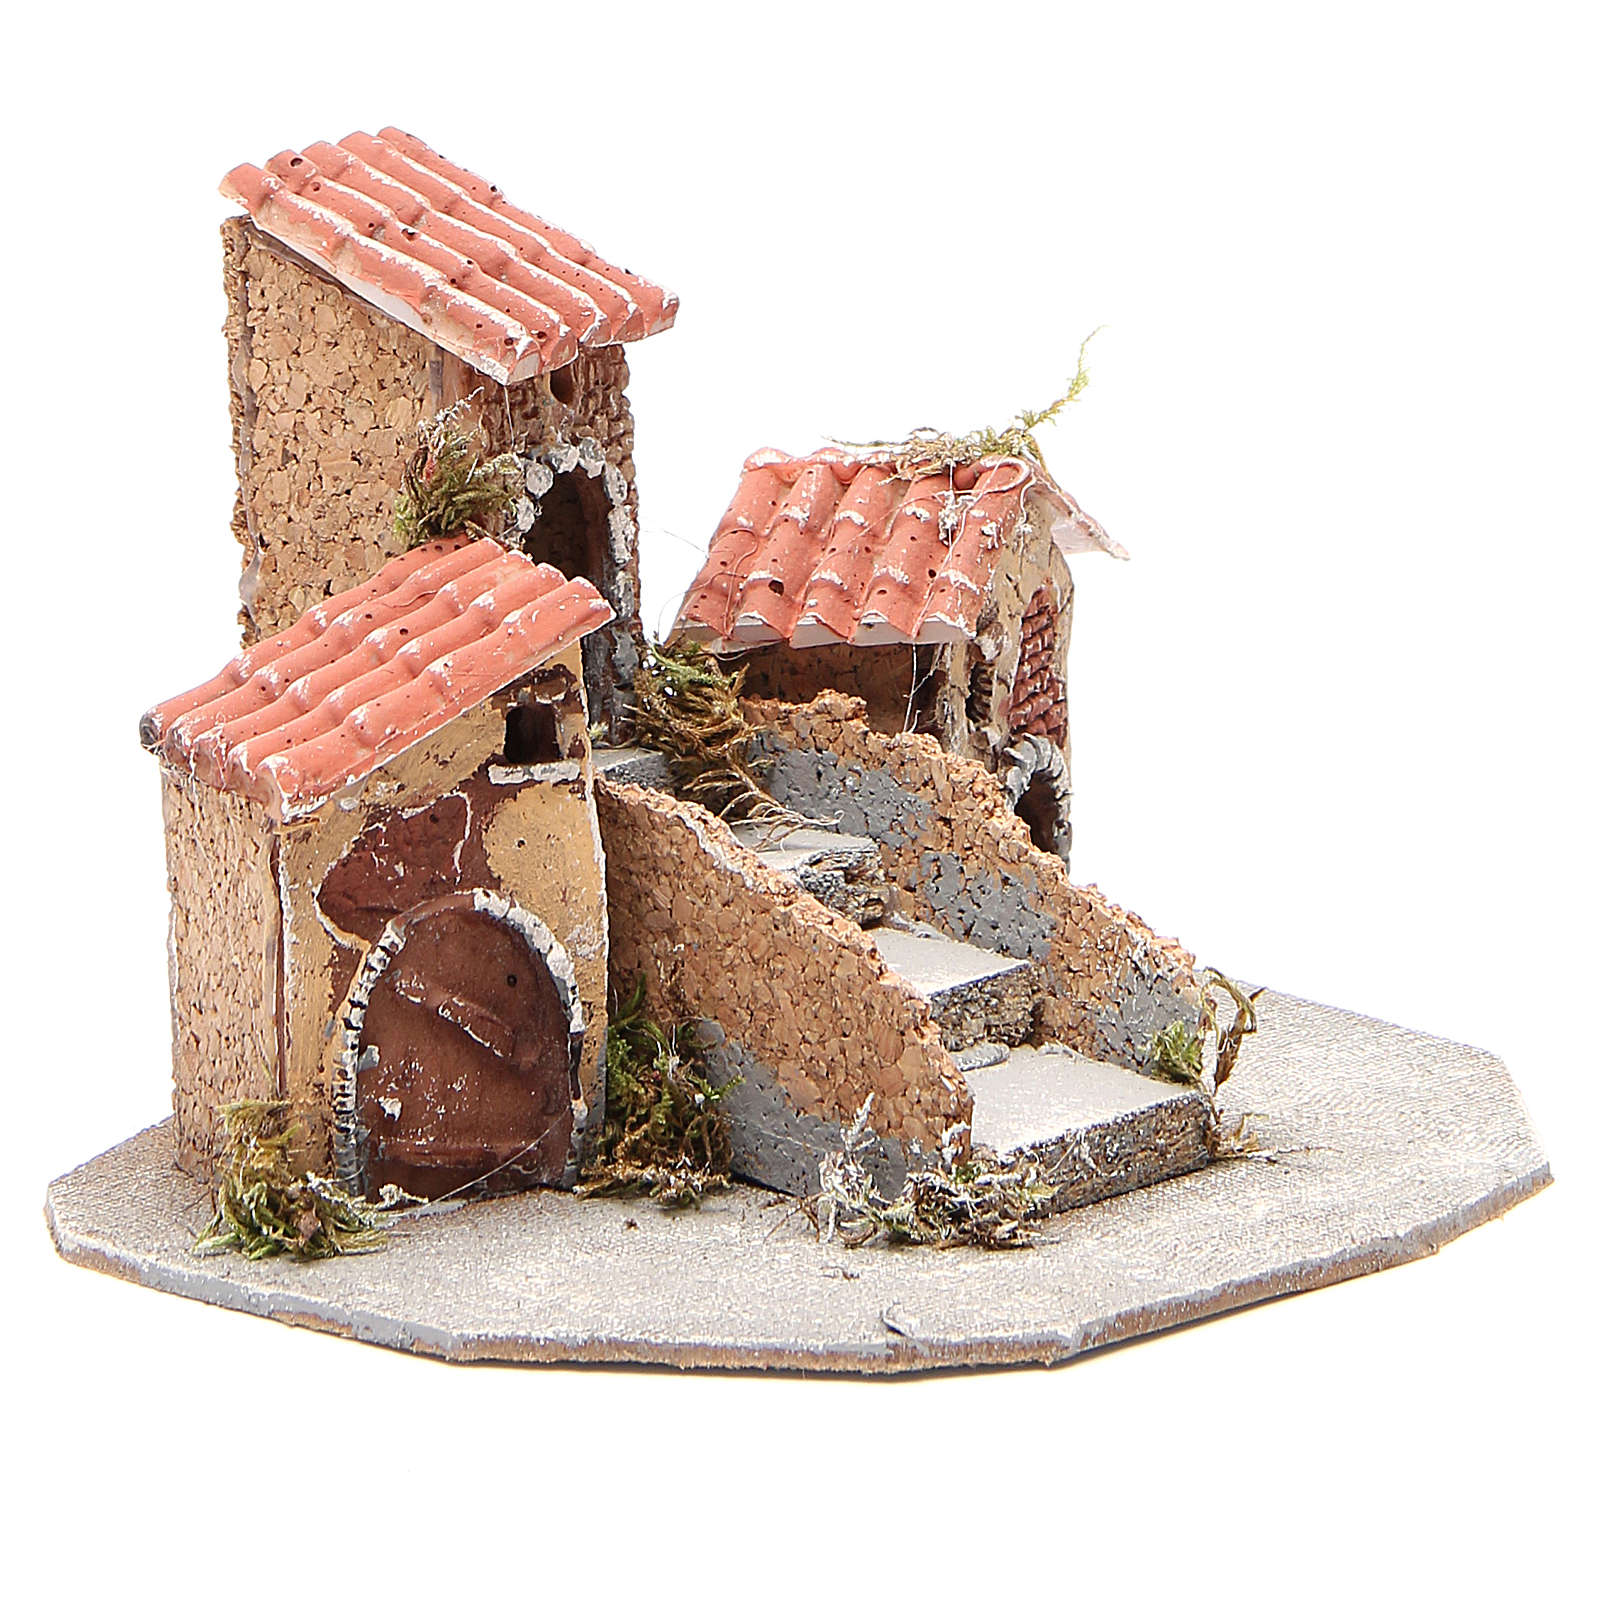 Composition of houses for Neapolitan Nativity scene, 17x24x20cm 4